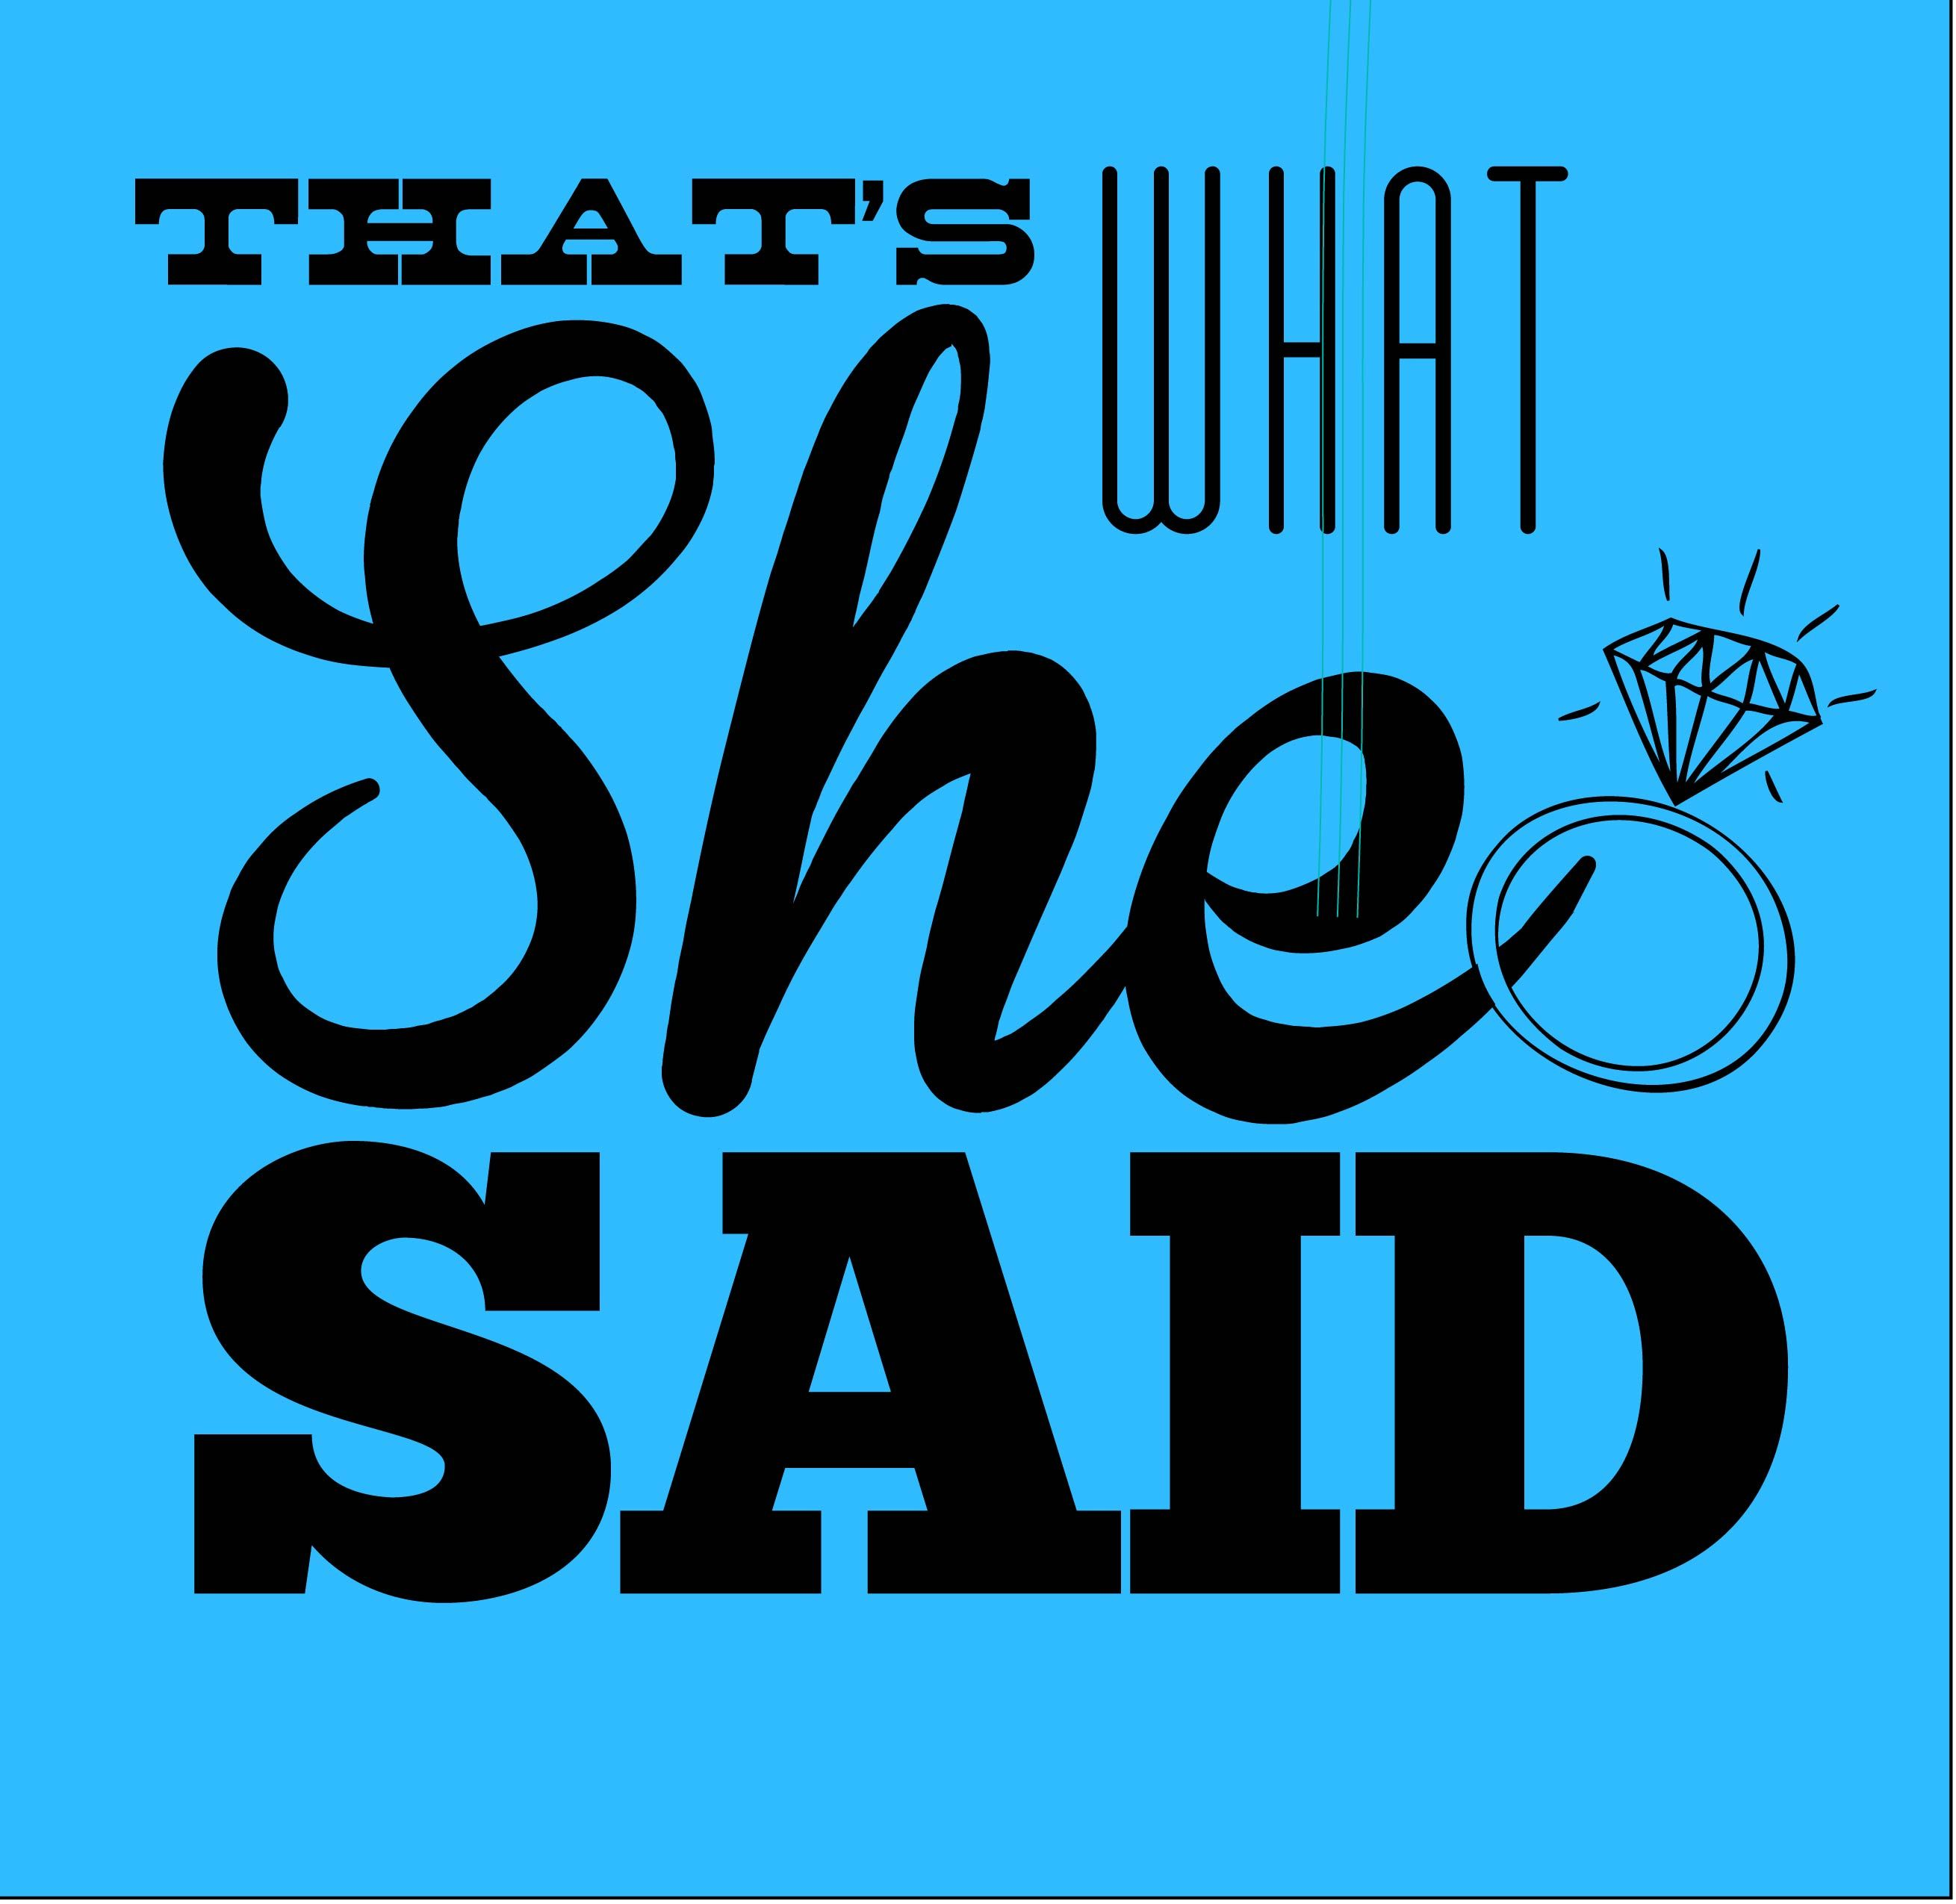 Funny Bachelorette Party T Shirt That S What She Said Free Customization At Tiny